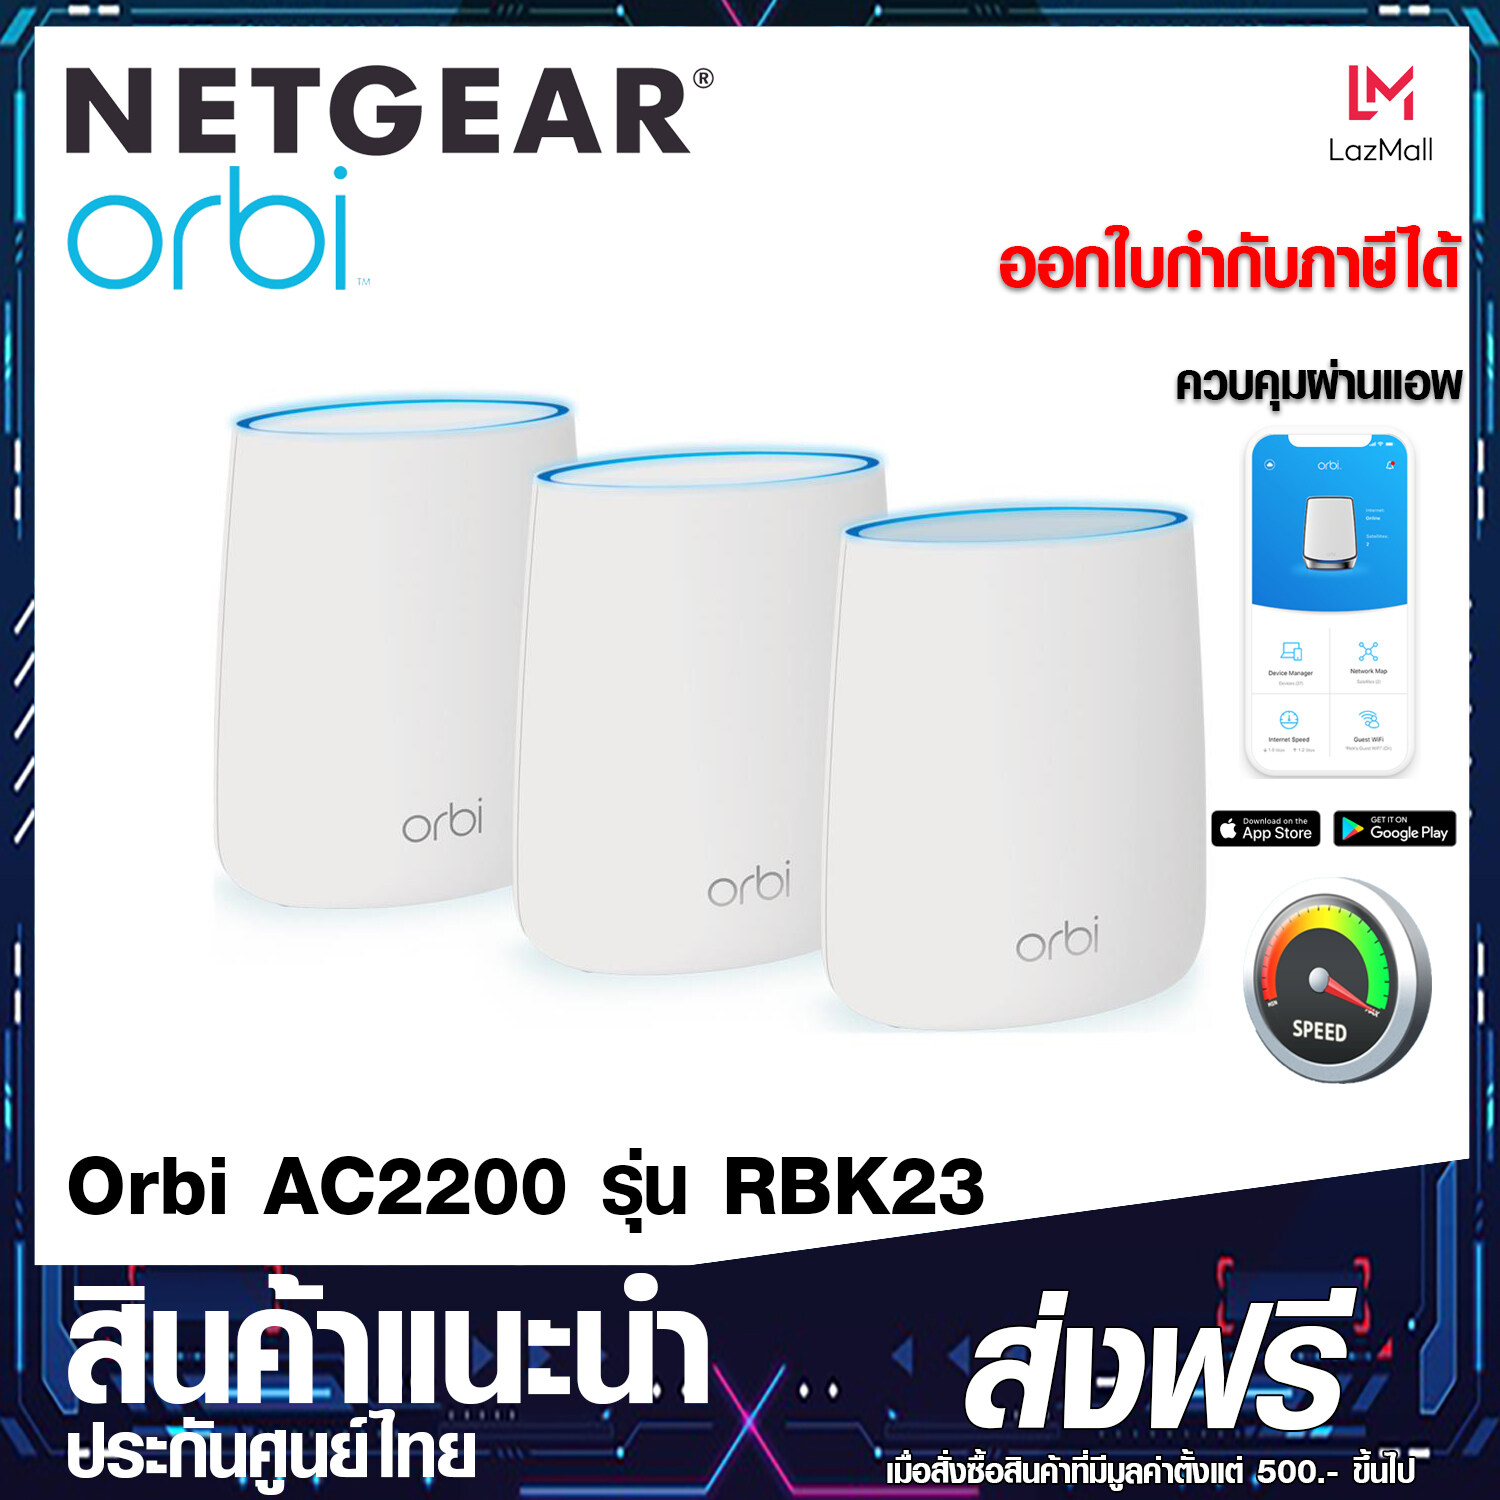 Netgear Orbi (rbk23) Tri-Band Whole Home Mesh Wifi System With 2.2gbps Speed ประกันศูนย์ไทย.